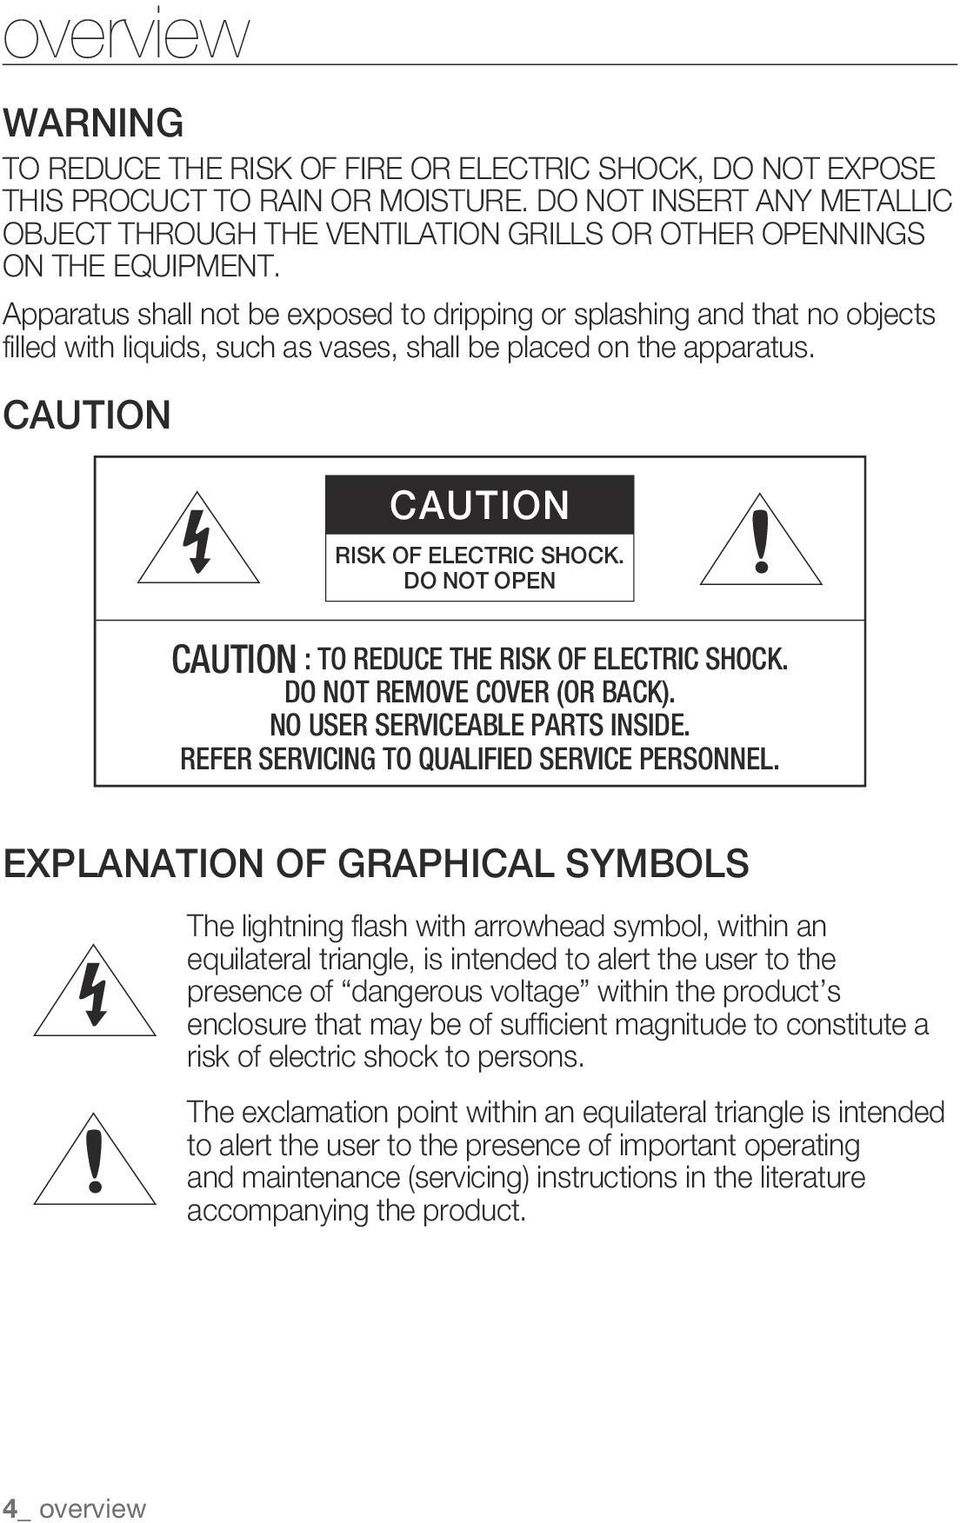 Apparatus shall not be exposed to dripping or splashing and that no objects filled with liquids, such as vases, shall be placed on the apparatus. CAUTION CAUTION RISK OF ELECTRIC SHOCK.